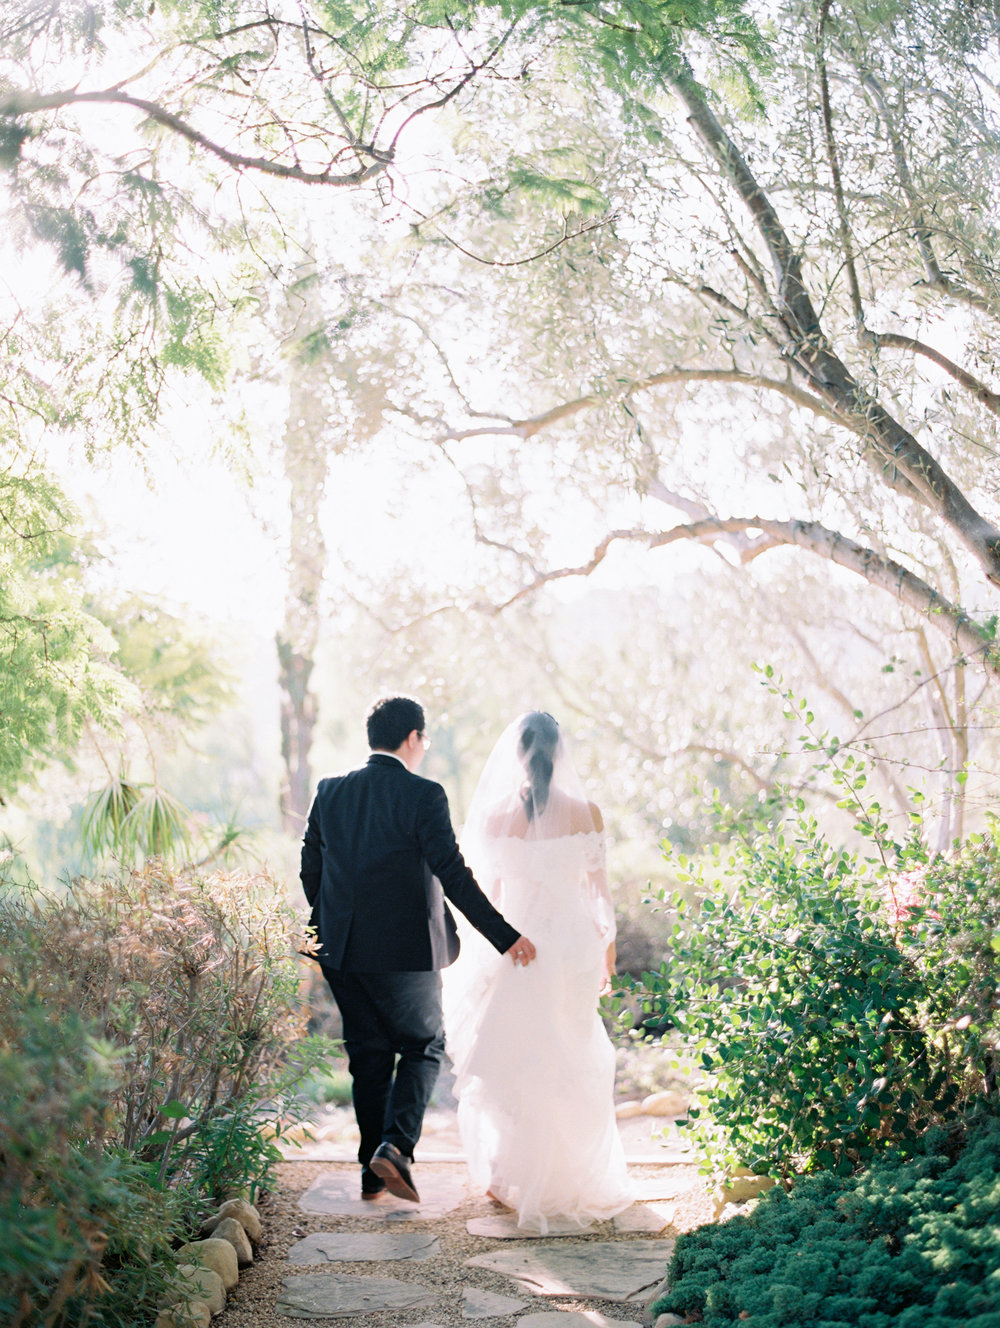 santa-barbara-elopement-wedding-planner-planning-coordinator-coordination-event-design-villa-verano-estate-riviera-garden-olive-tree-asian-day-of-palm-tree (1).jpg